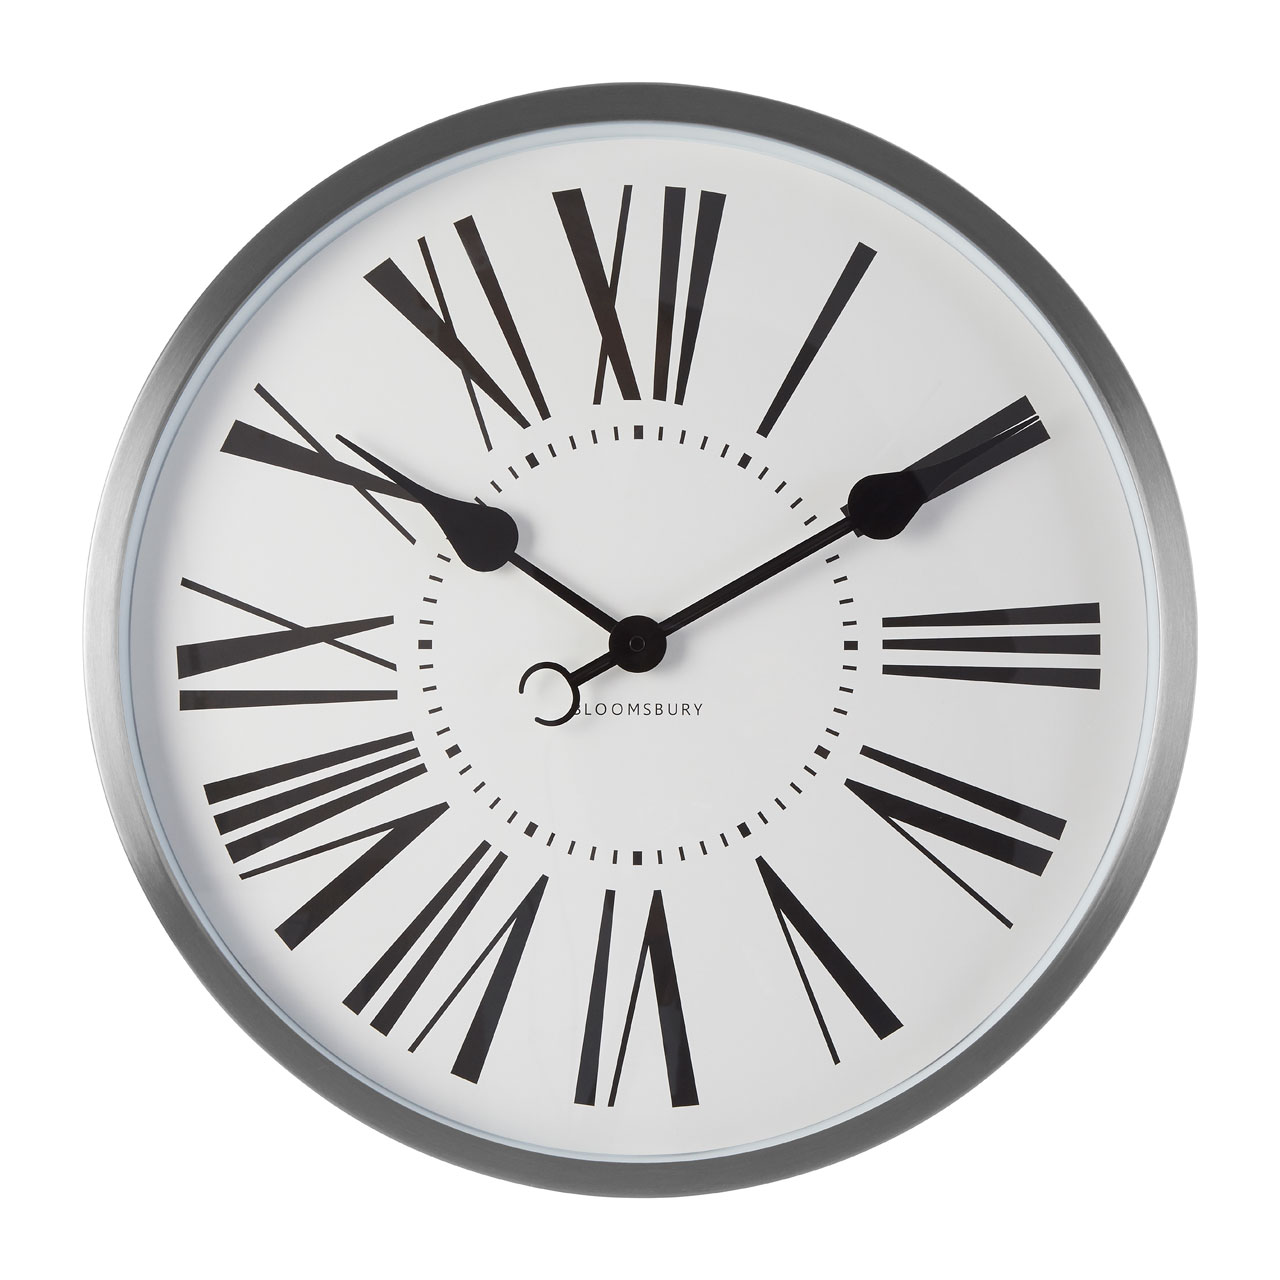 Details About Baillie Round Wall Clock Chrome White Face Og Roman Numerals